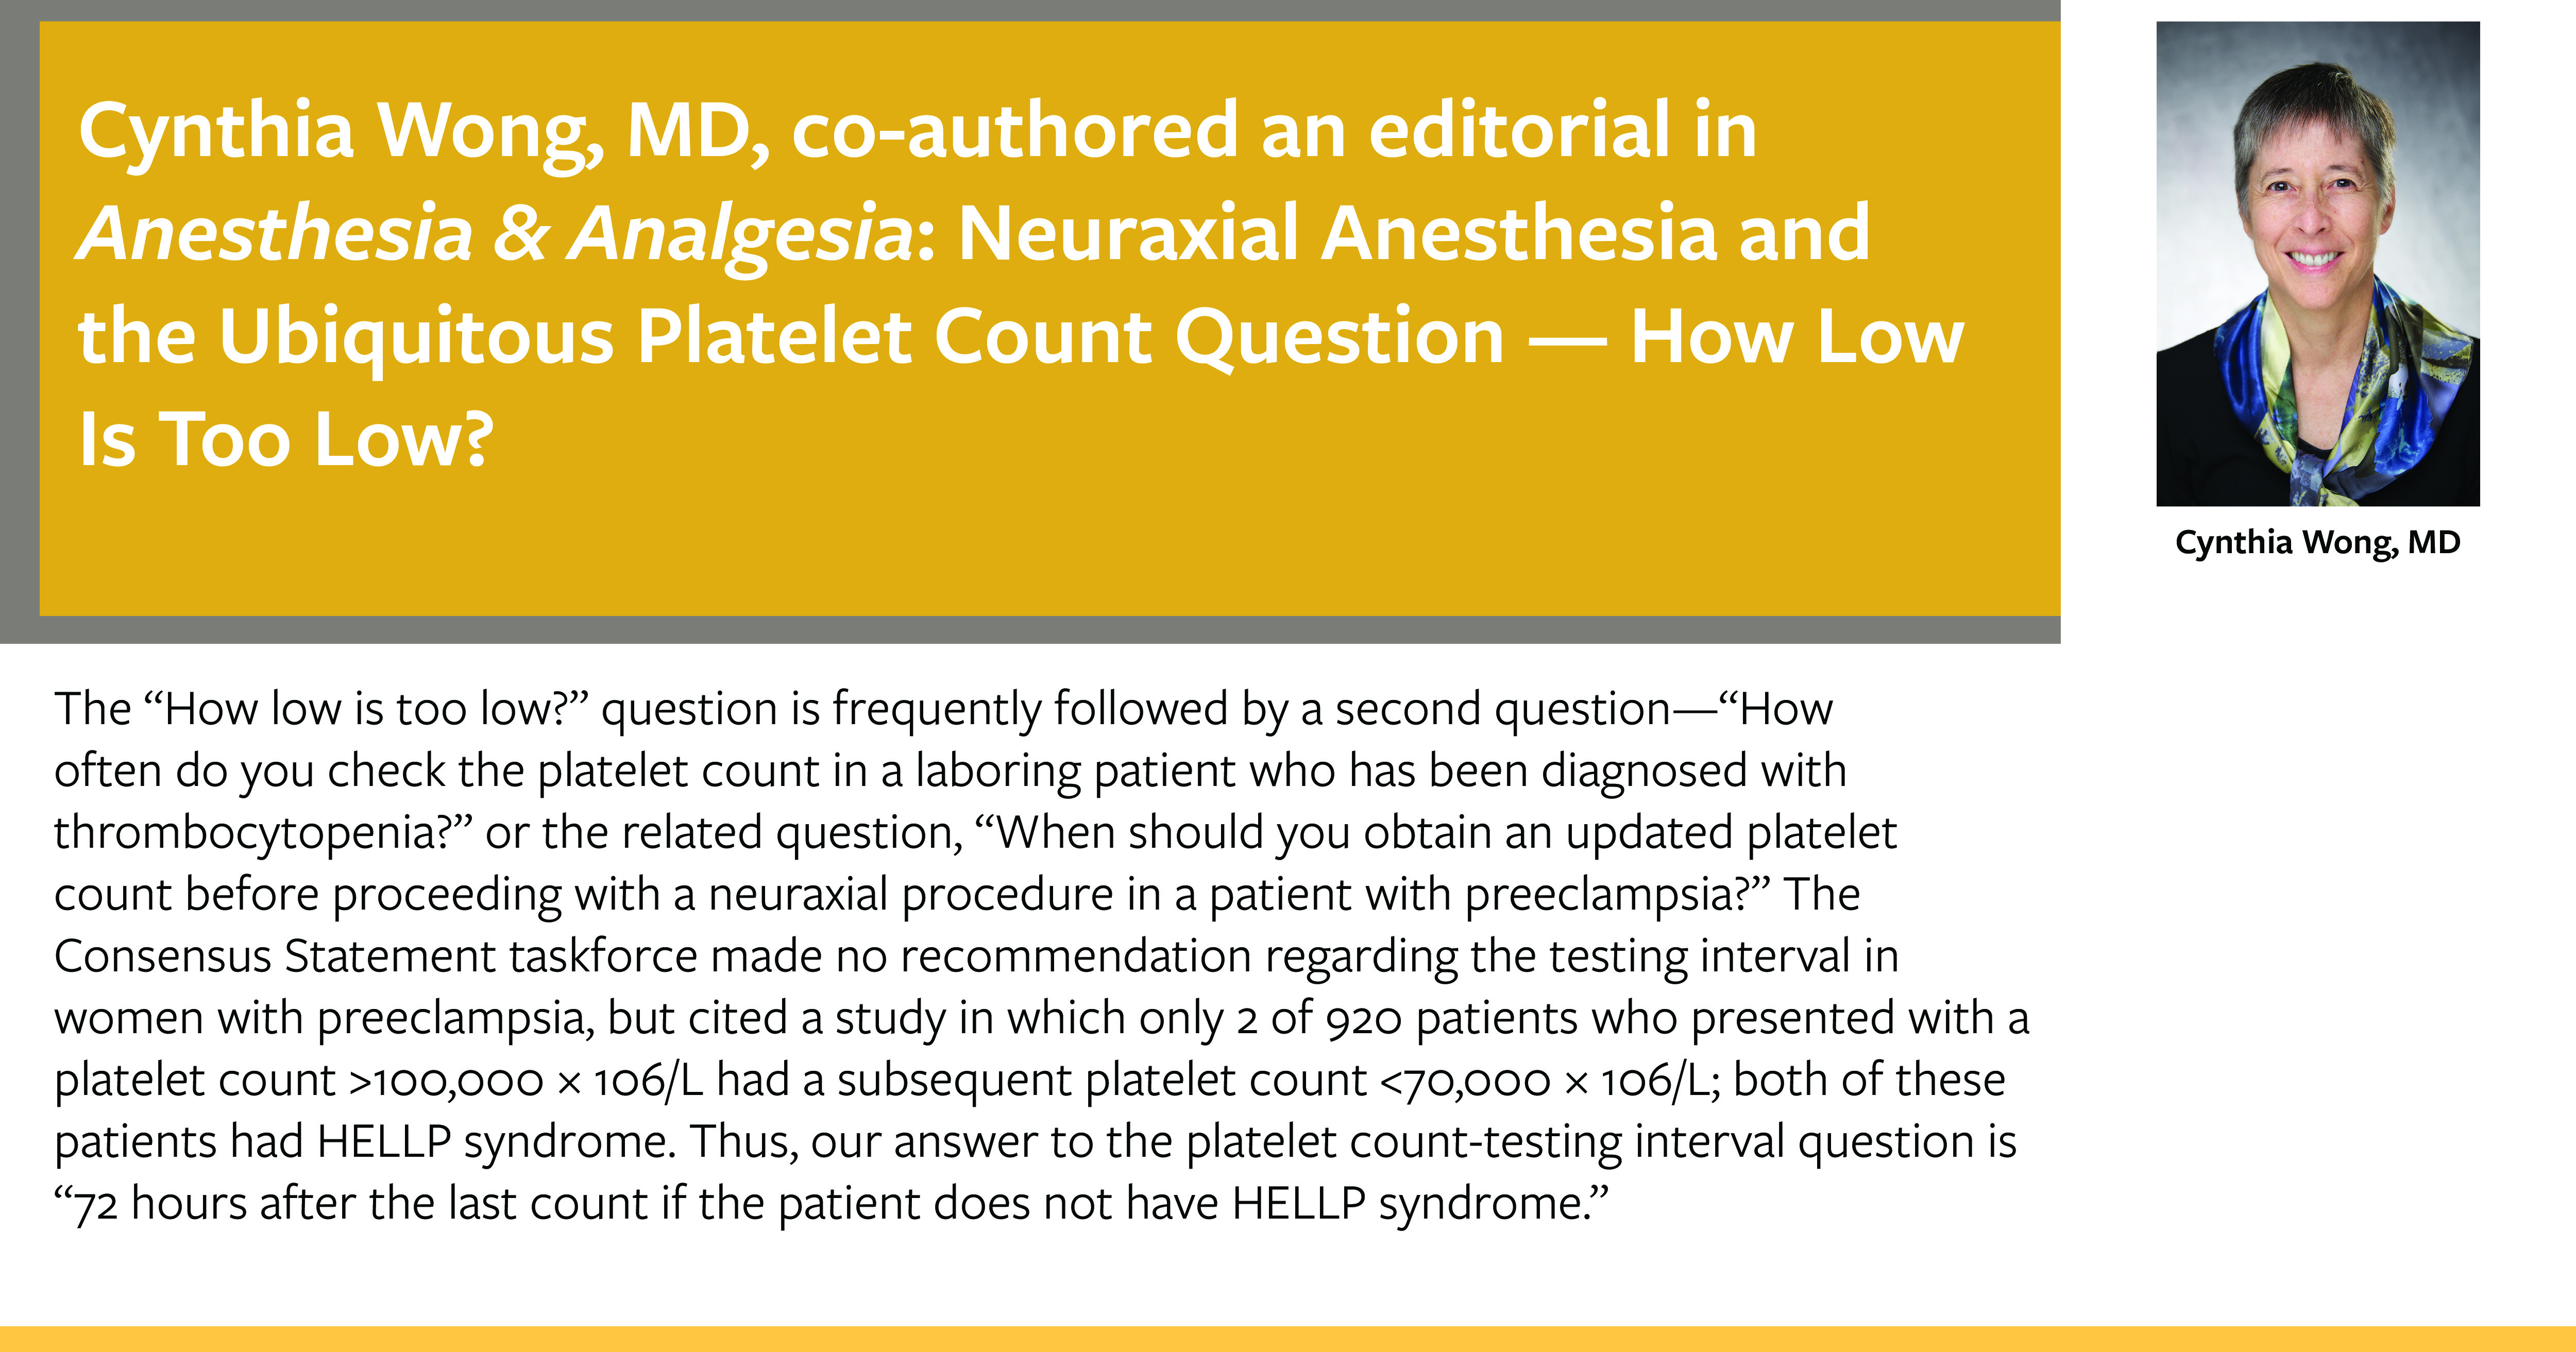 Cynthia Wong, MD, co-authored an editorial regarding neuraxial anesthesia and platelet count